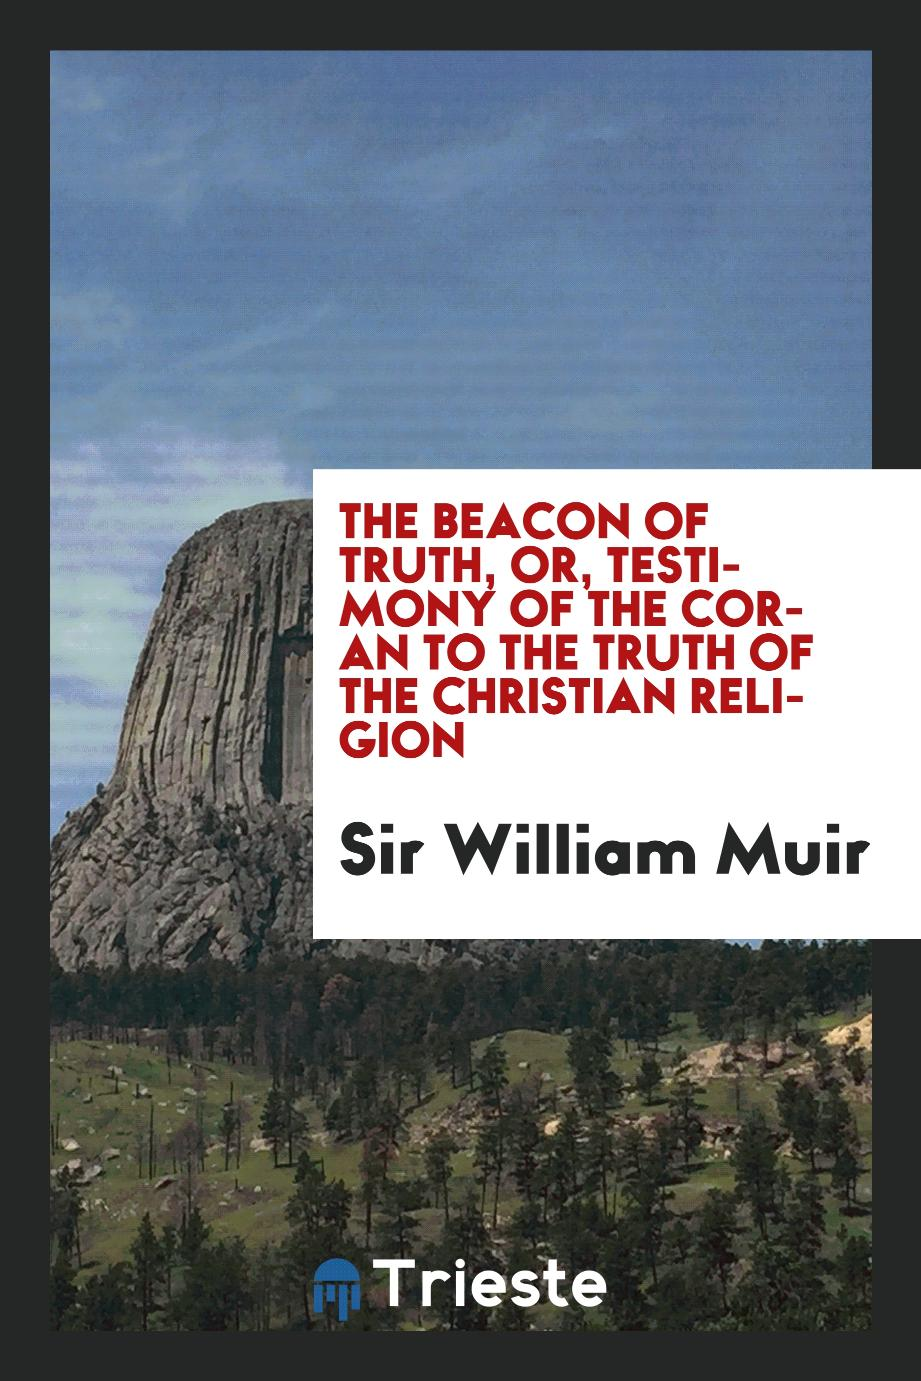 The Beacon of Truth, or, Testimony of the Coran to the Truth of the Christian Religion